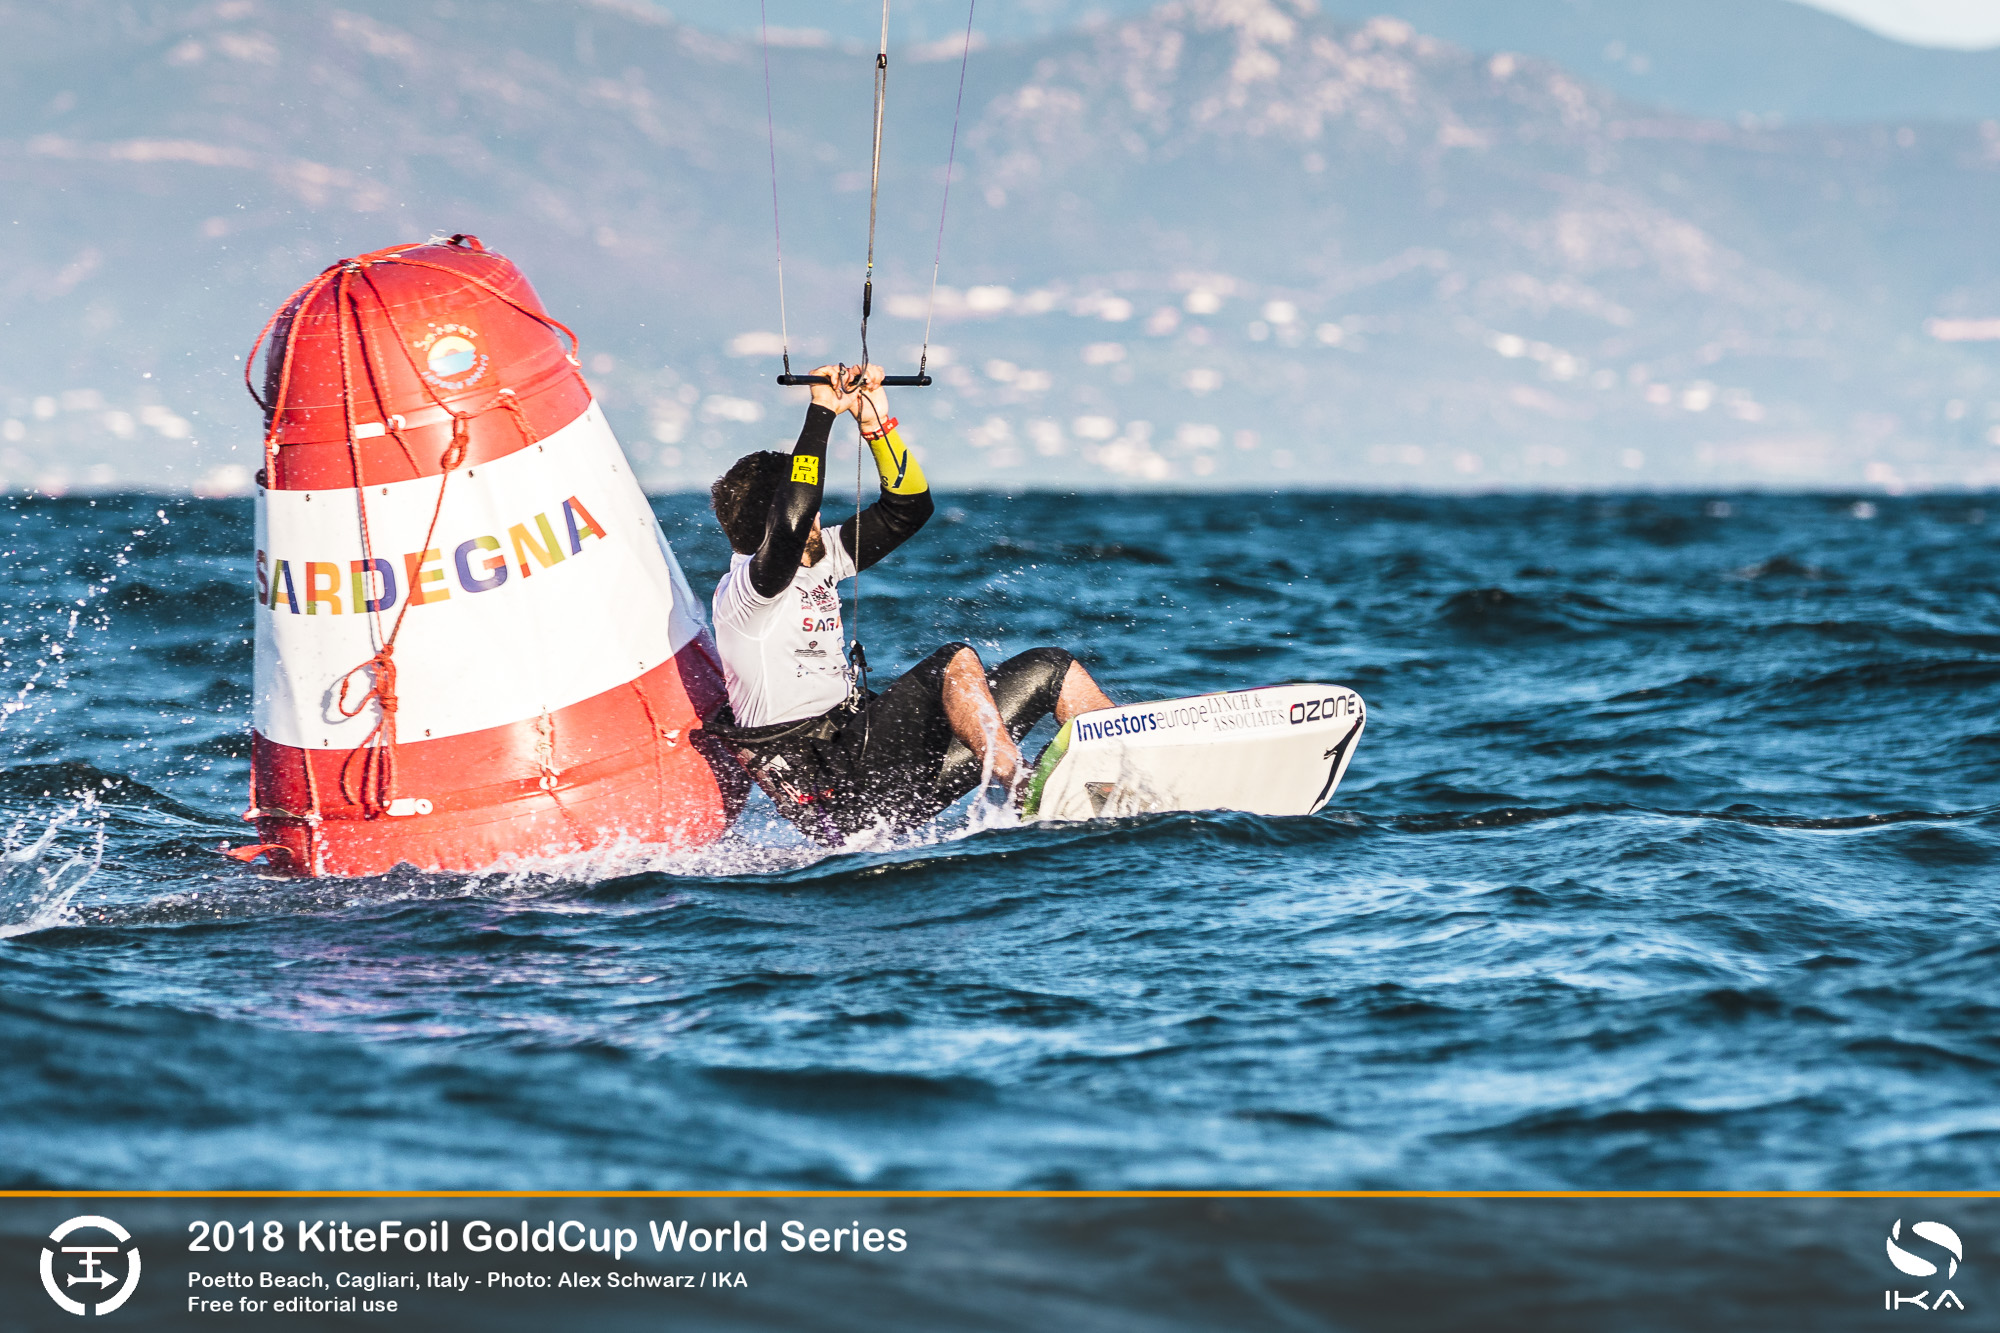 4089bd8c e125 4825 9082 b2d60b16c1f0 - Tricky Conditions for the Opening of the Sardinia Grand Slam